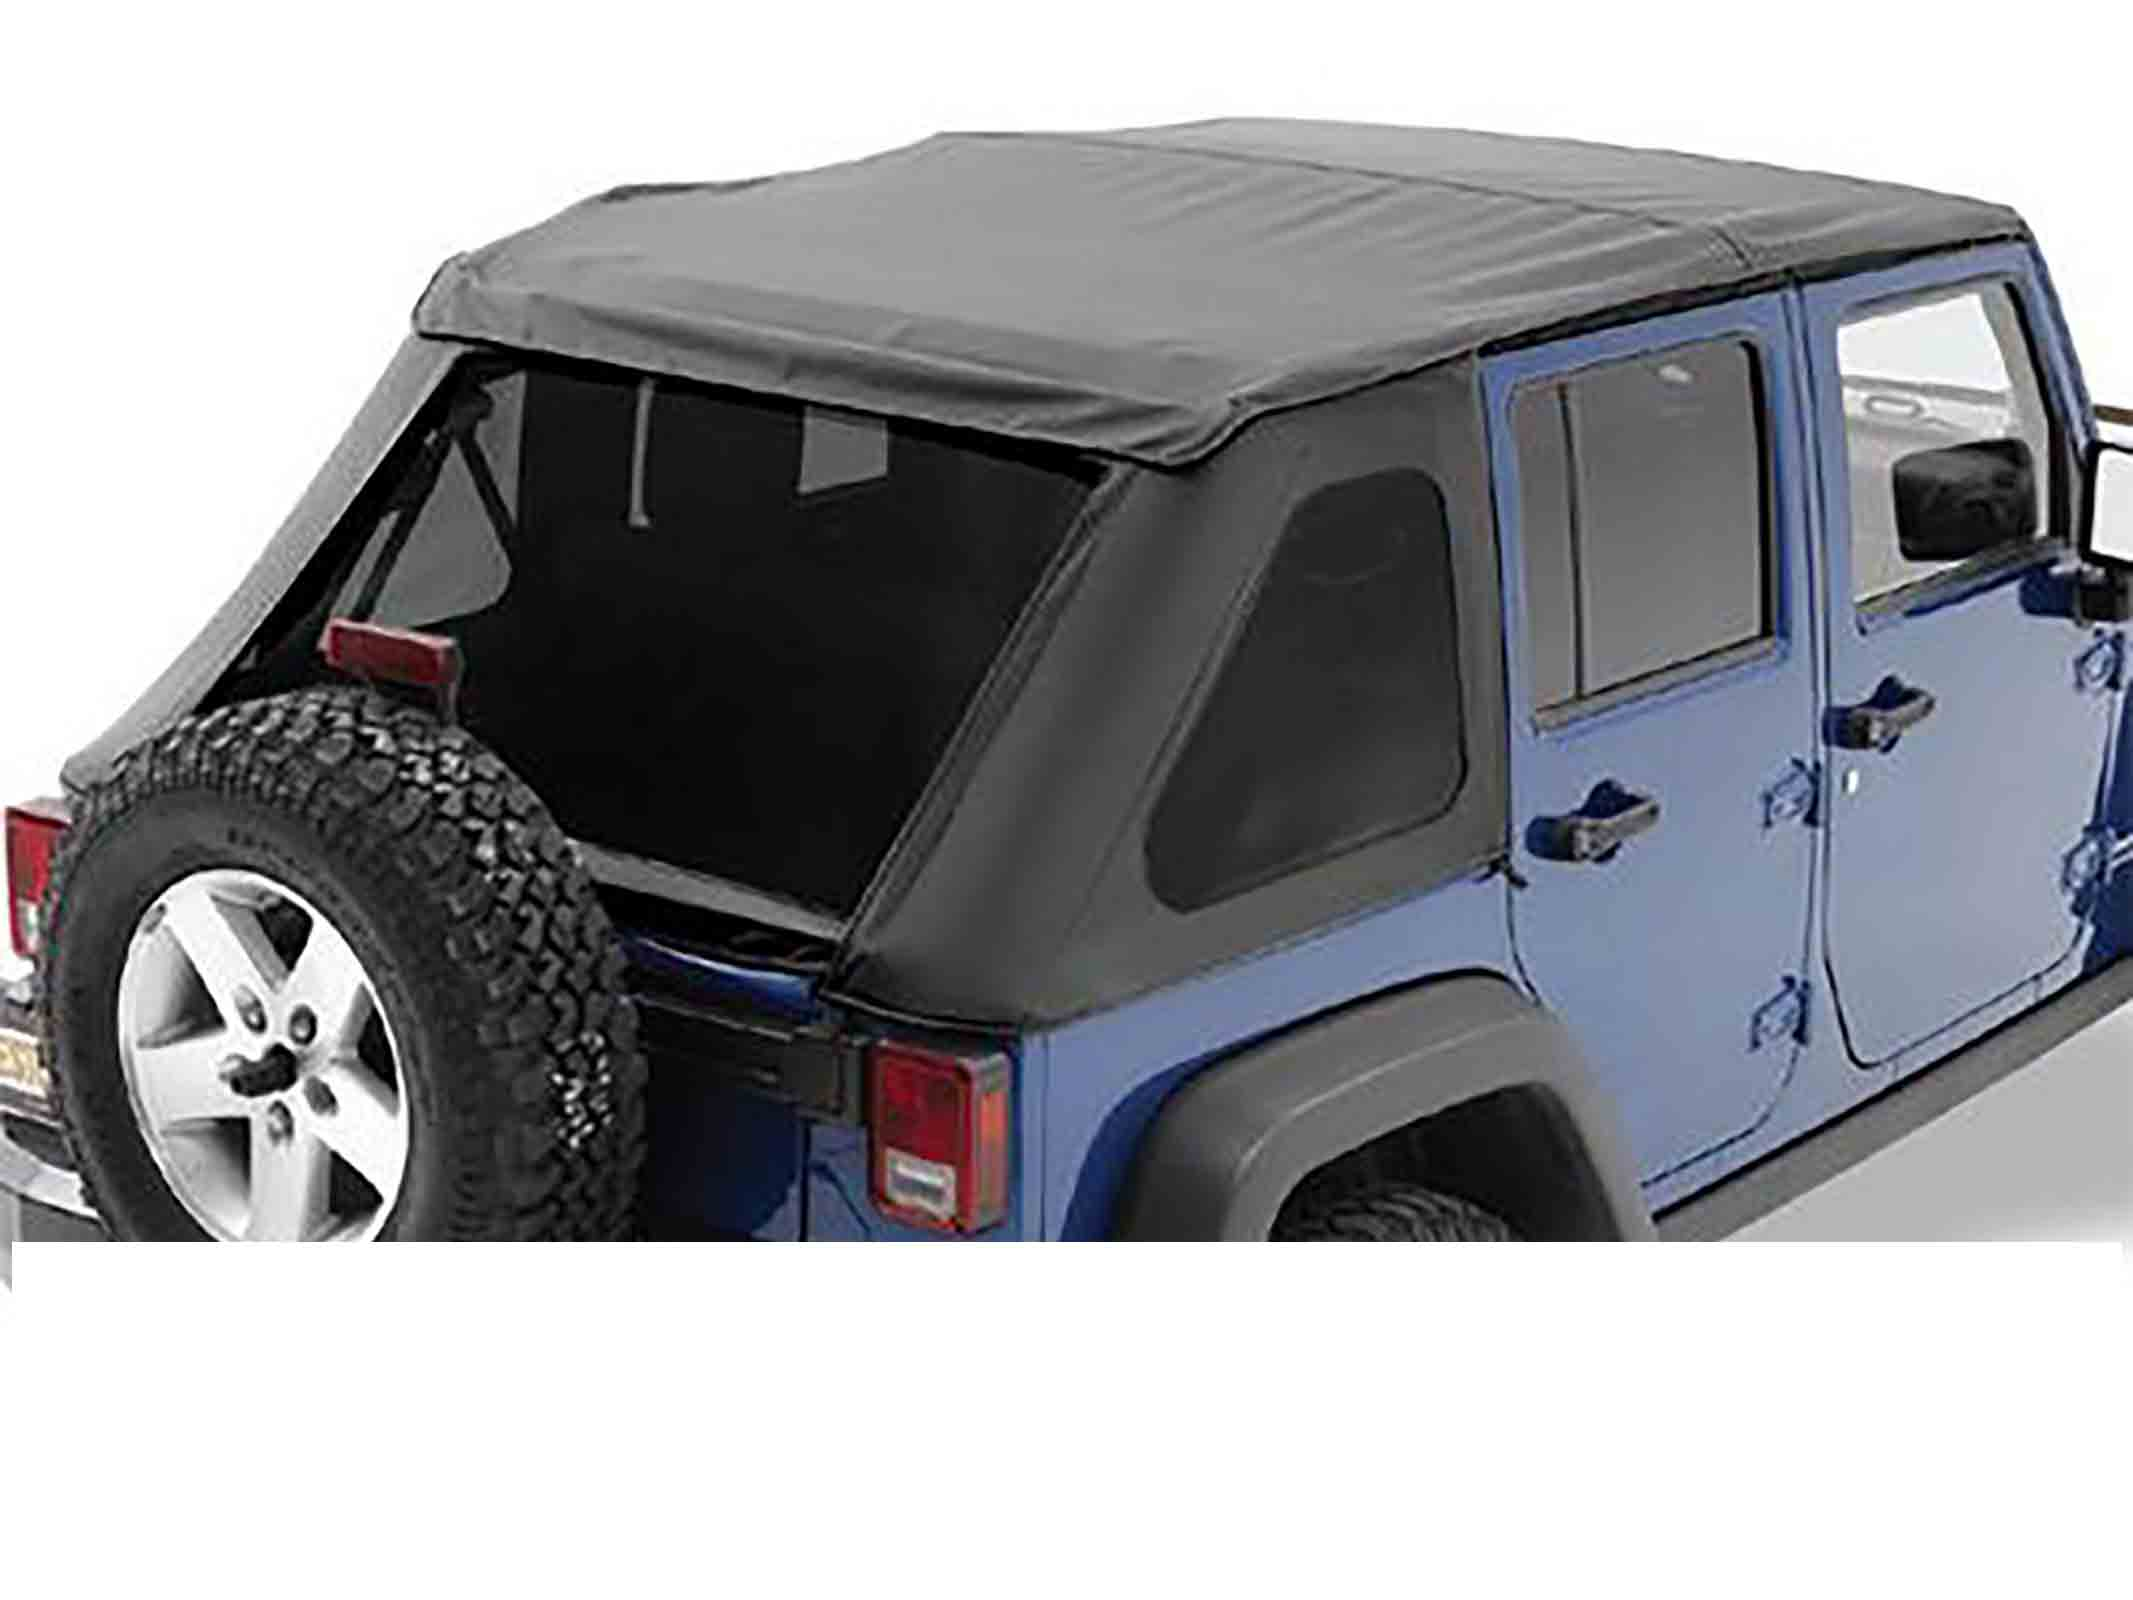 Softtop soft top capottina ricambio trektop nx wrangler jk unlimited 07 16 black diamond 4 porte rica